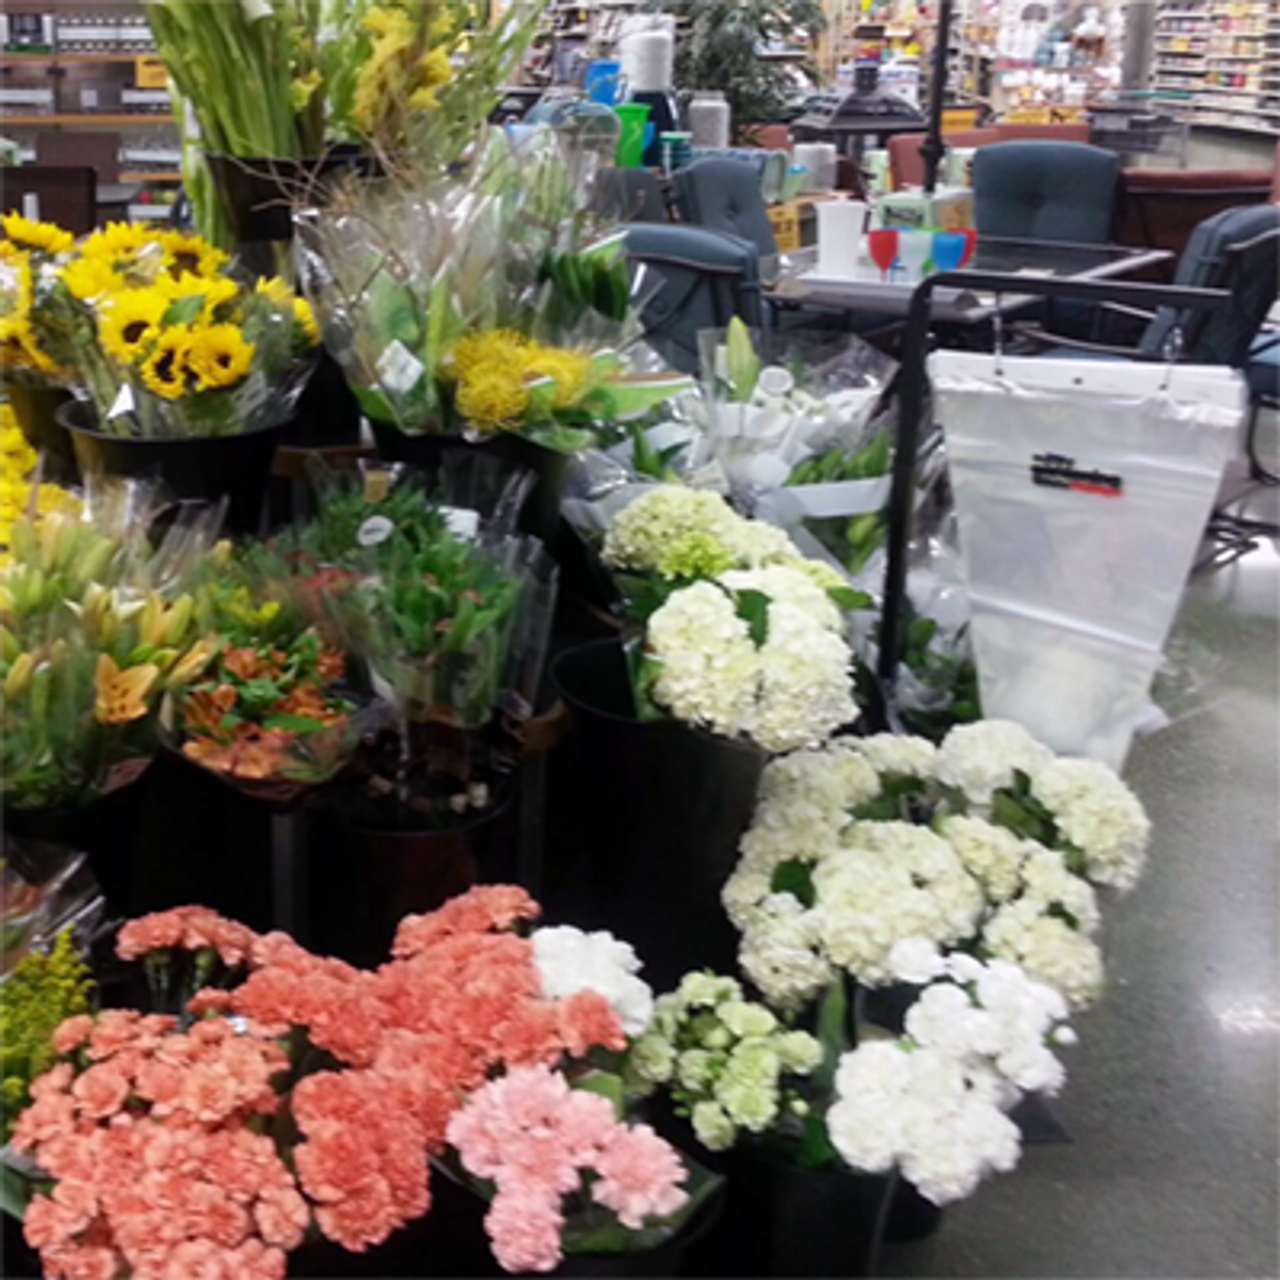 Pallet sign holder being used in floral department